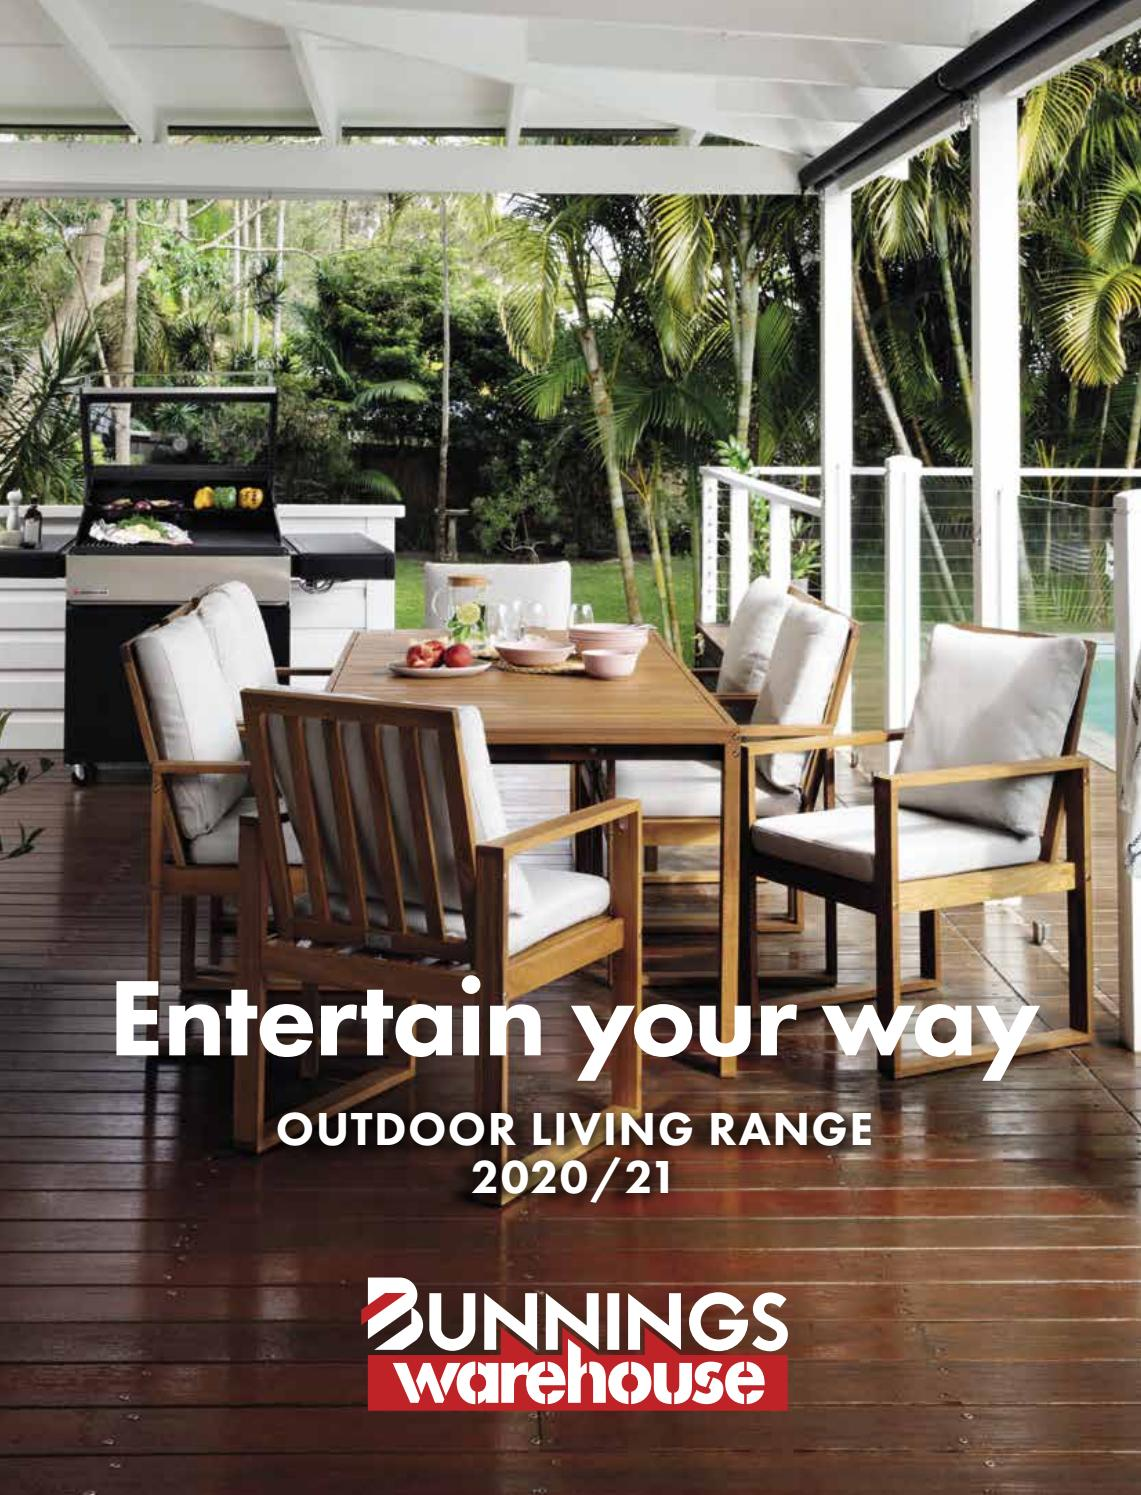 Outdoor Living Range Book 2020 21 By